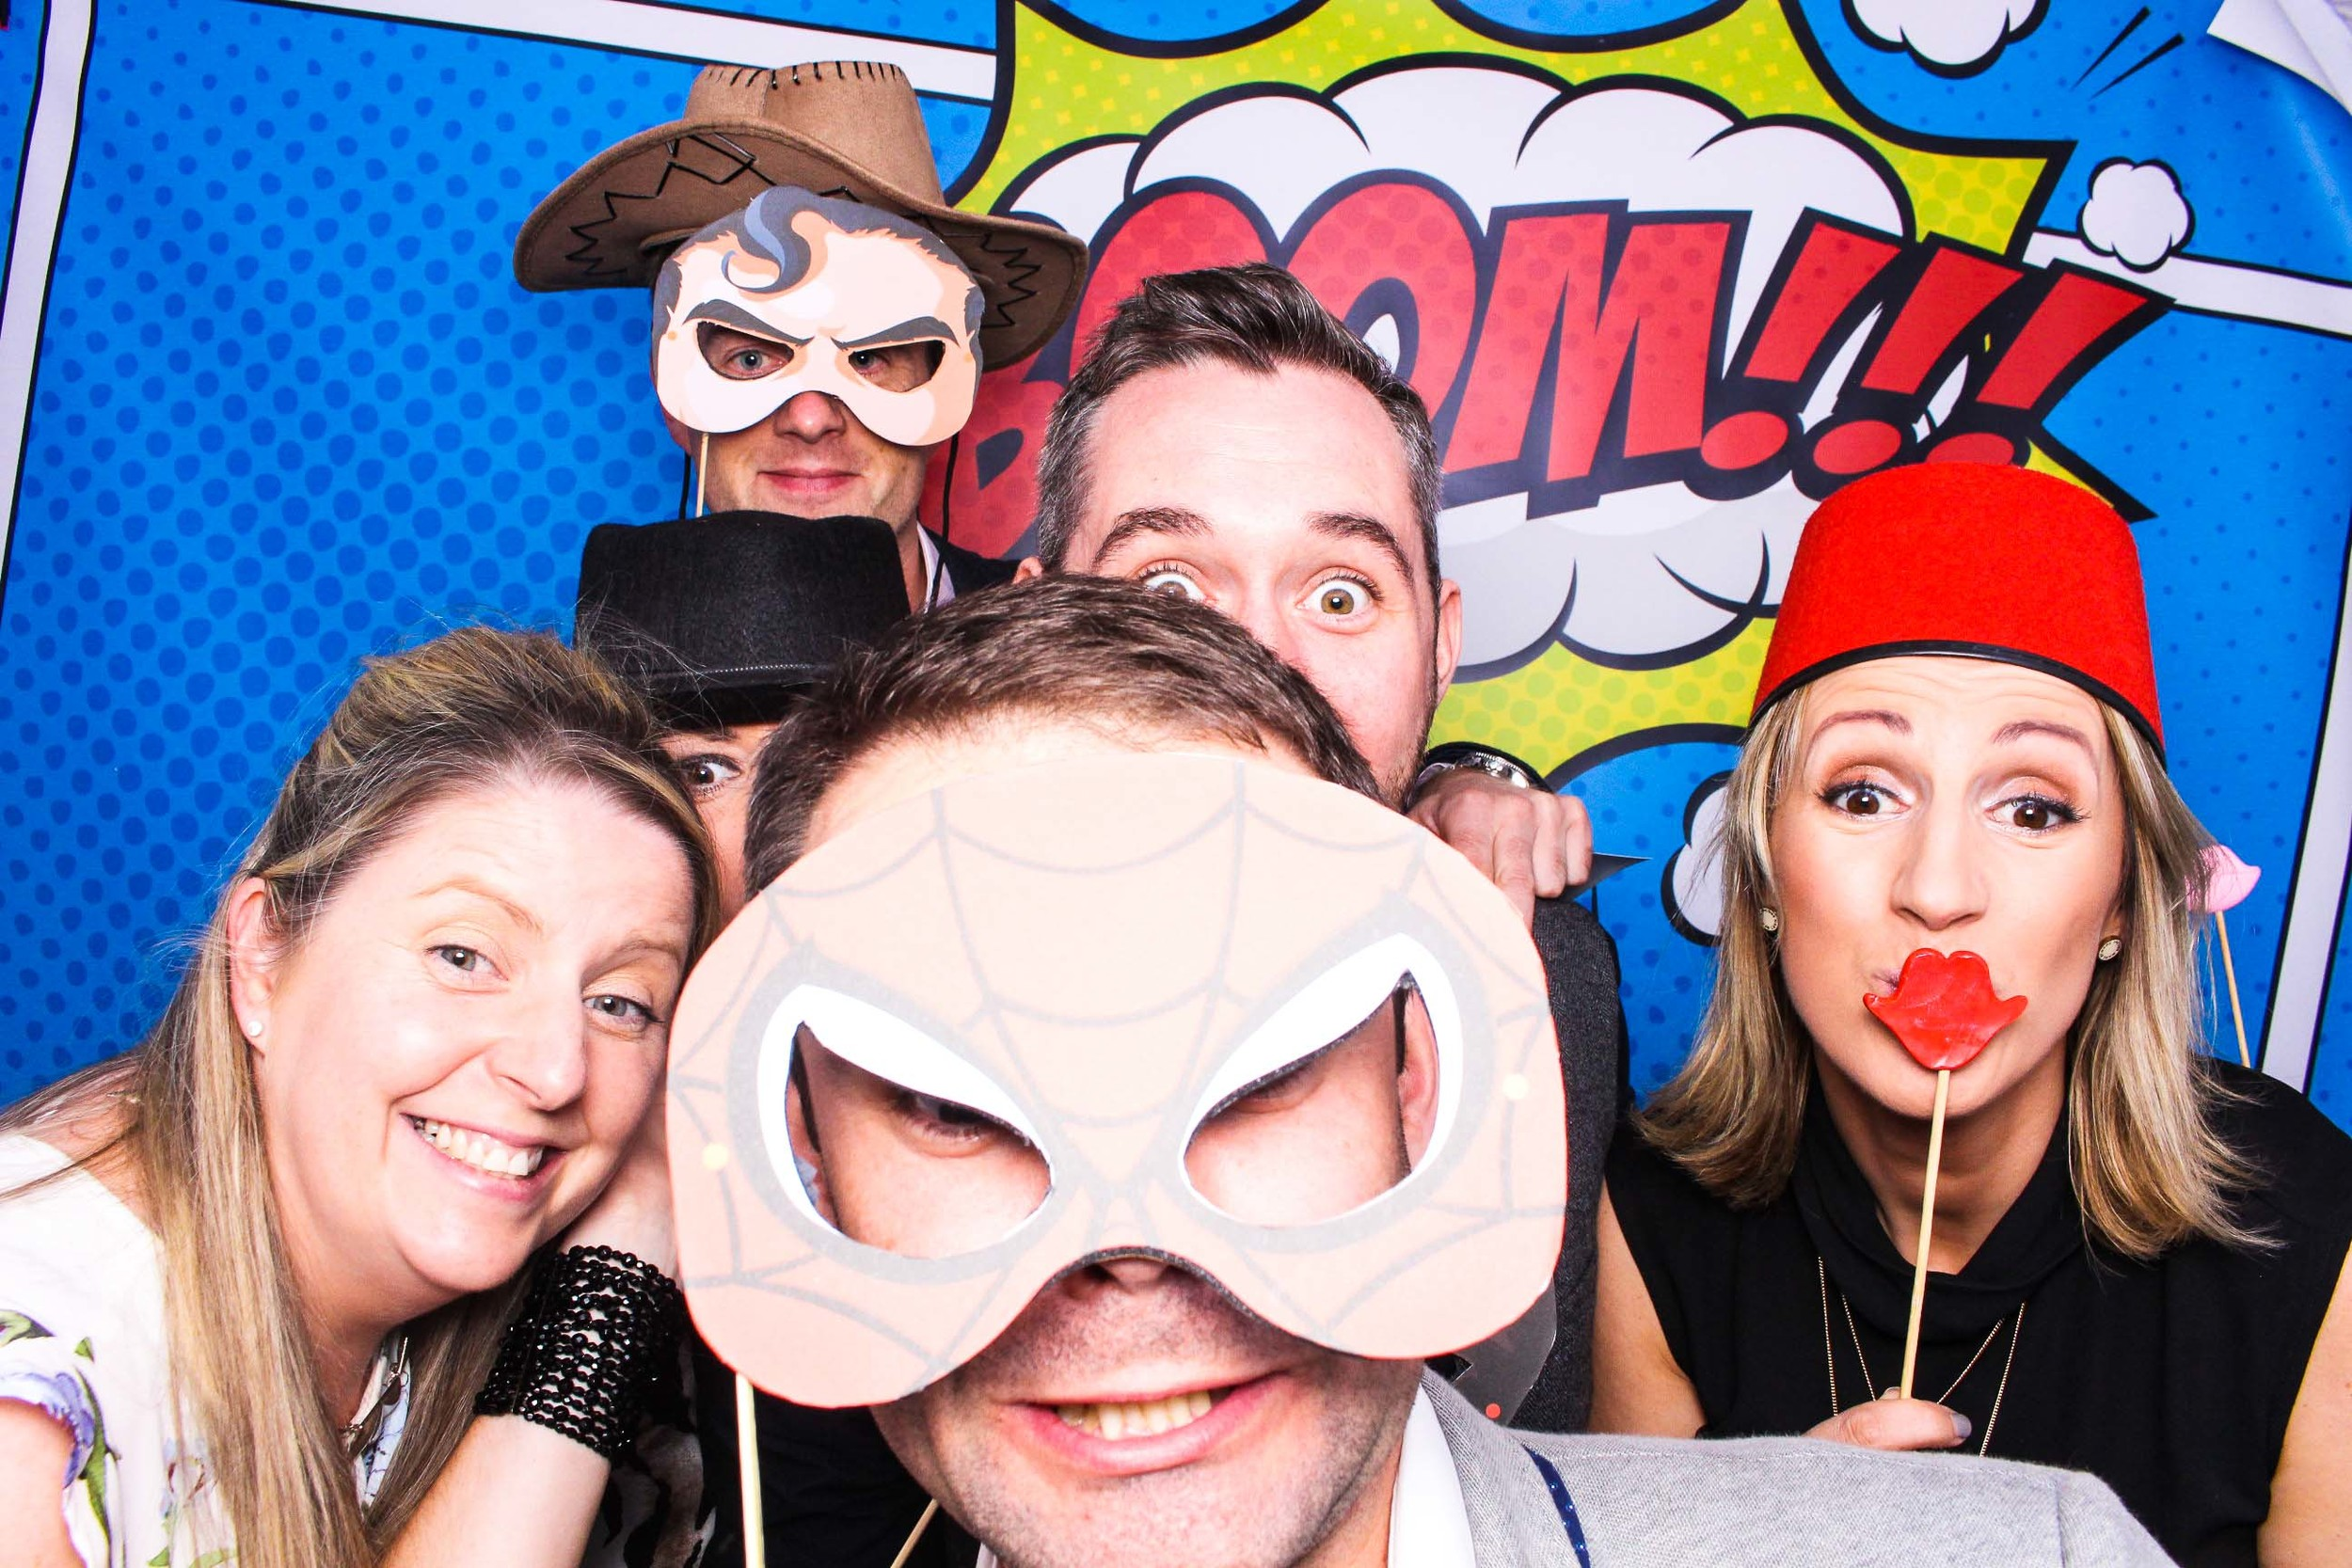 Fotoauto Photo Booth Hire - Shop Direct-94.jpg